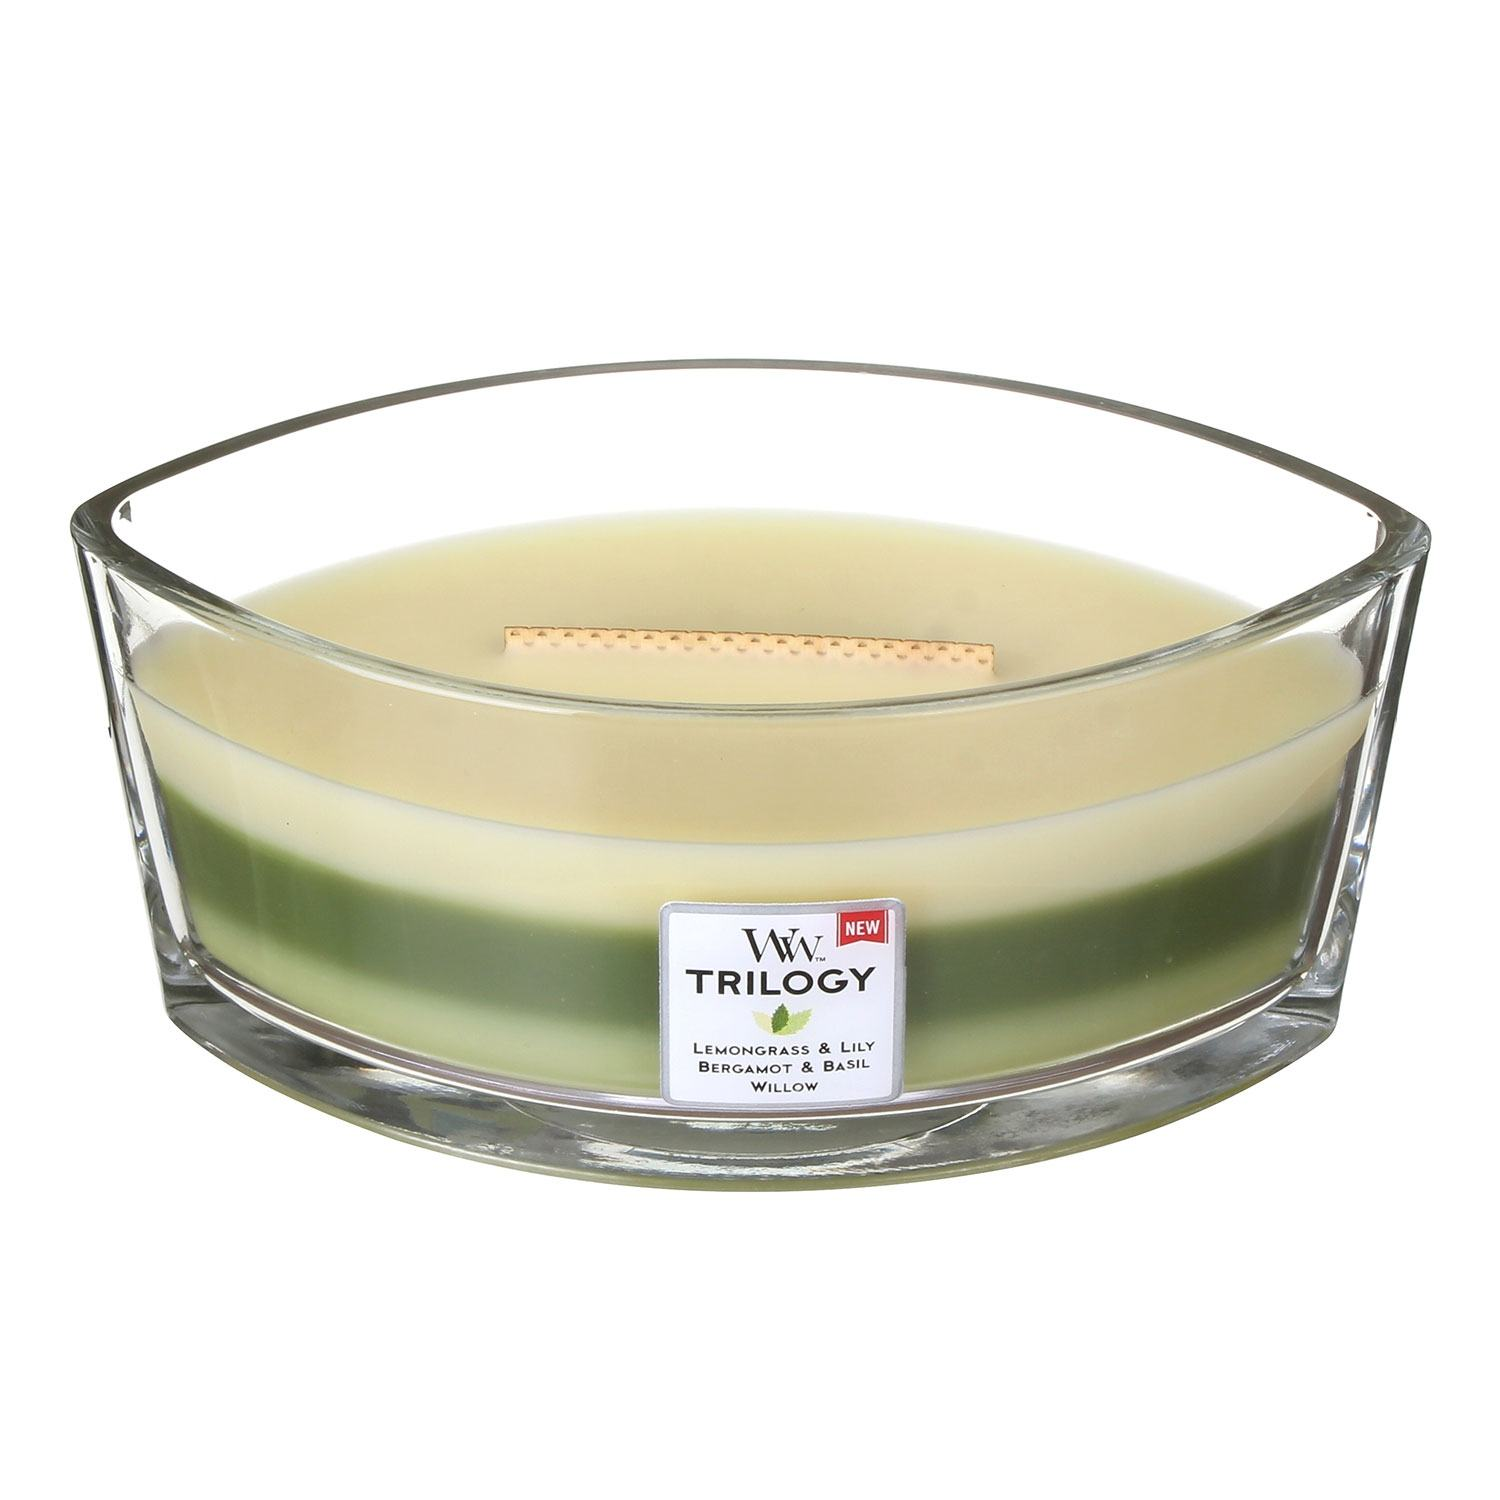 Scented Candles WoodWick Hearthwick Garden Oasis Trilogy Candle